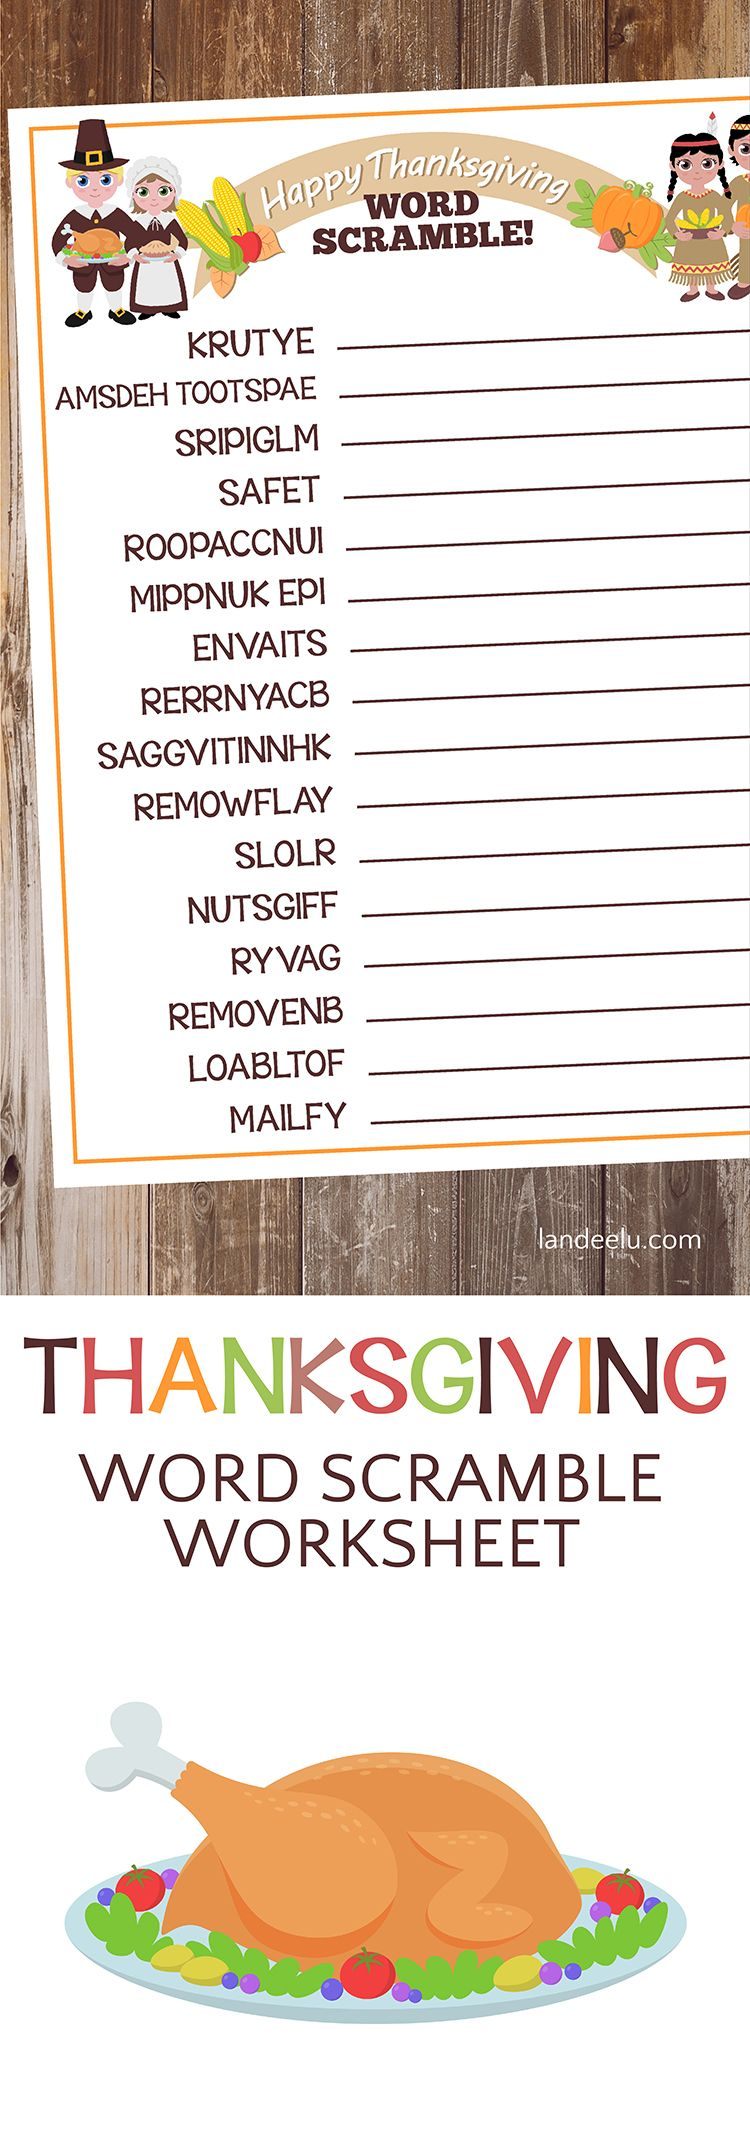 Thanksgiving Worksheet Word Scramble – Fun Thanksgiving Worksheets